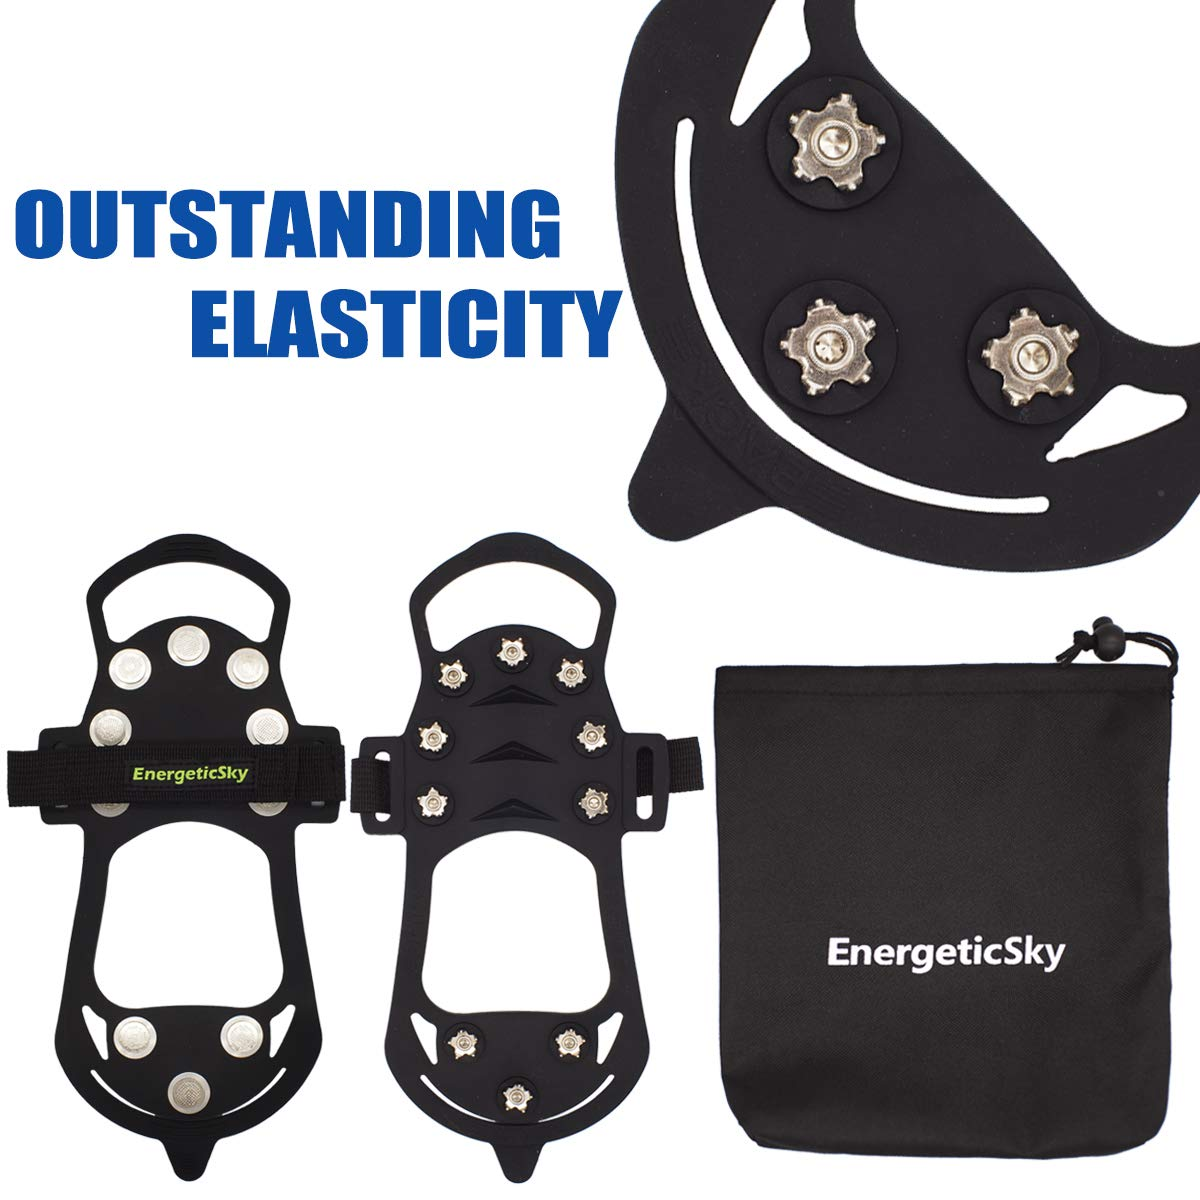 EnergeticSky Ice Cleat Spikes Crampons and Tread for Snow,Ice,Attaches Over Shoes//Boots for Everyday Safety in Winter,Outdoor,Slippery Terrain.